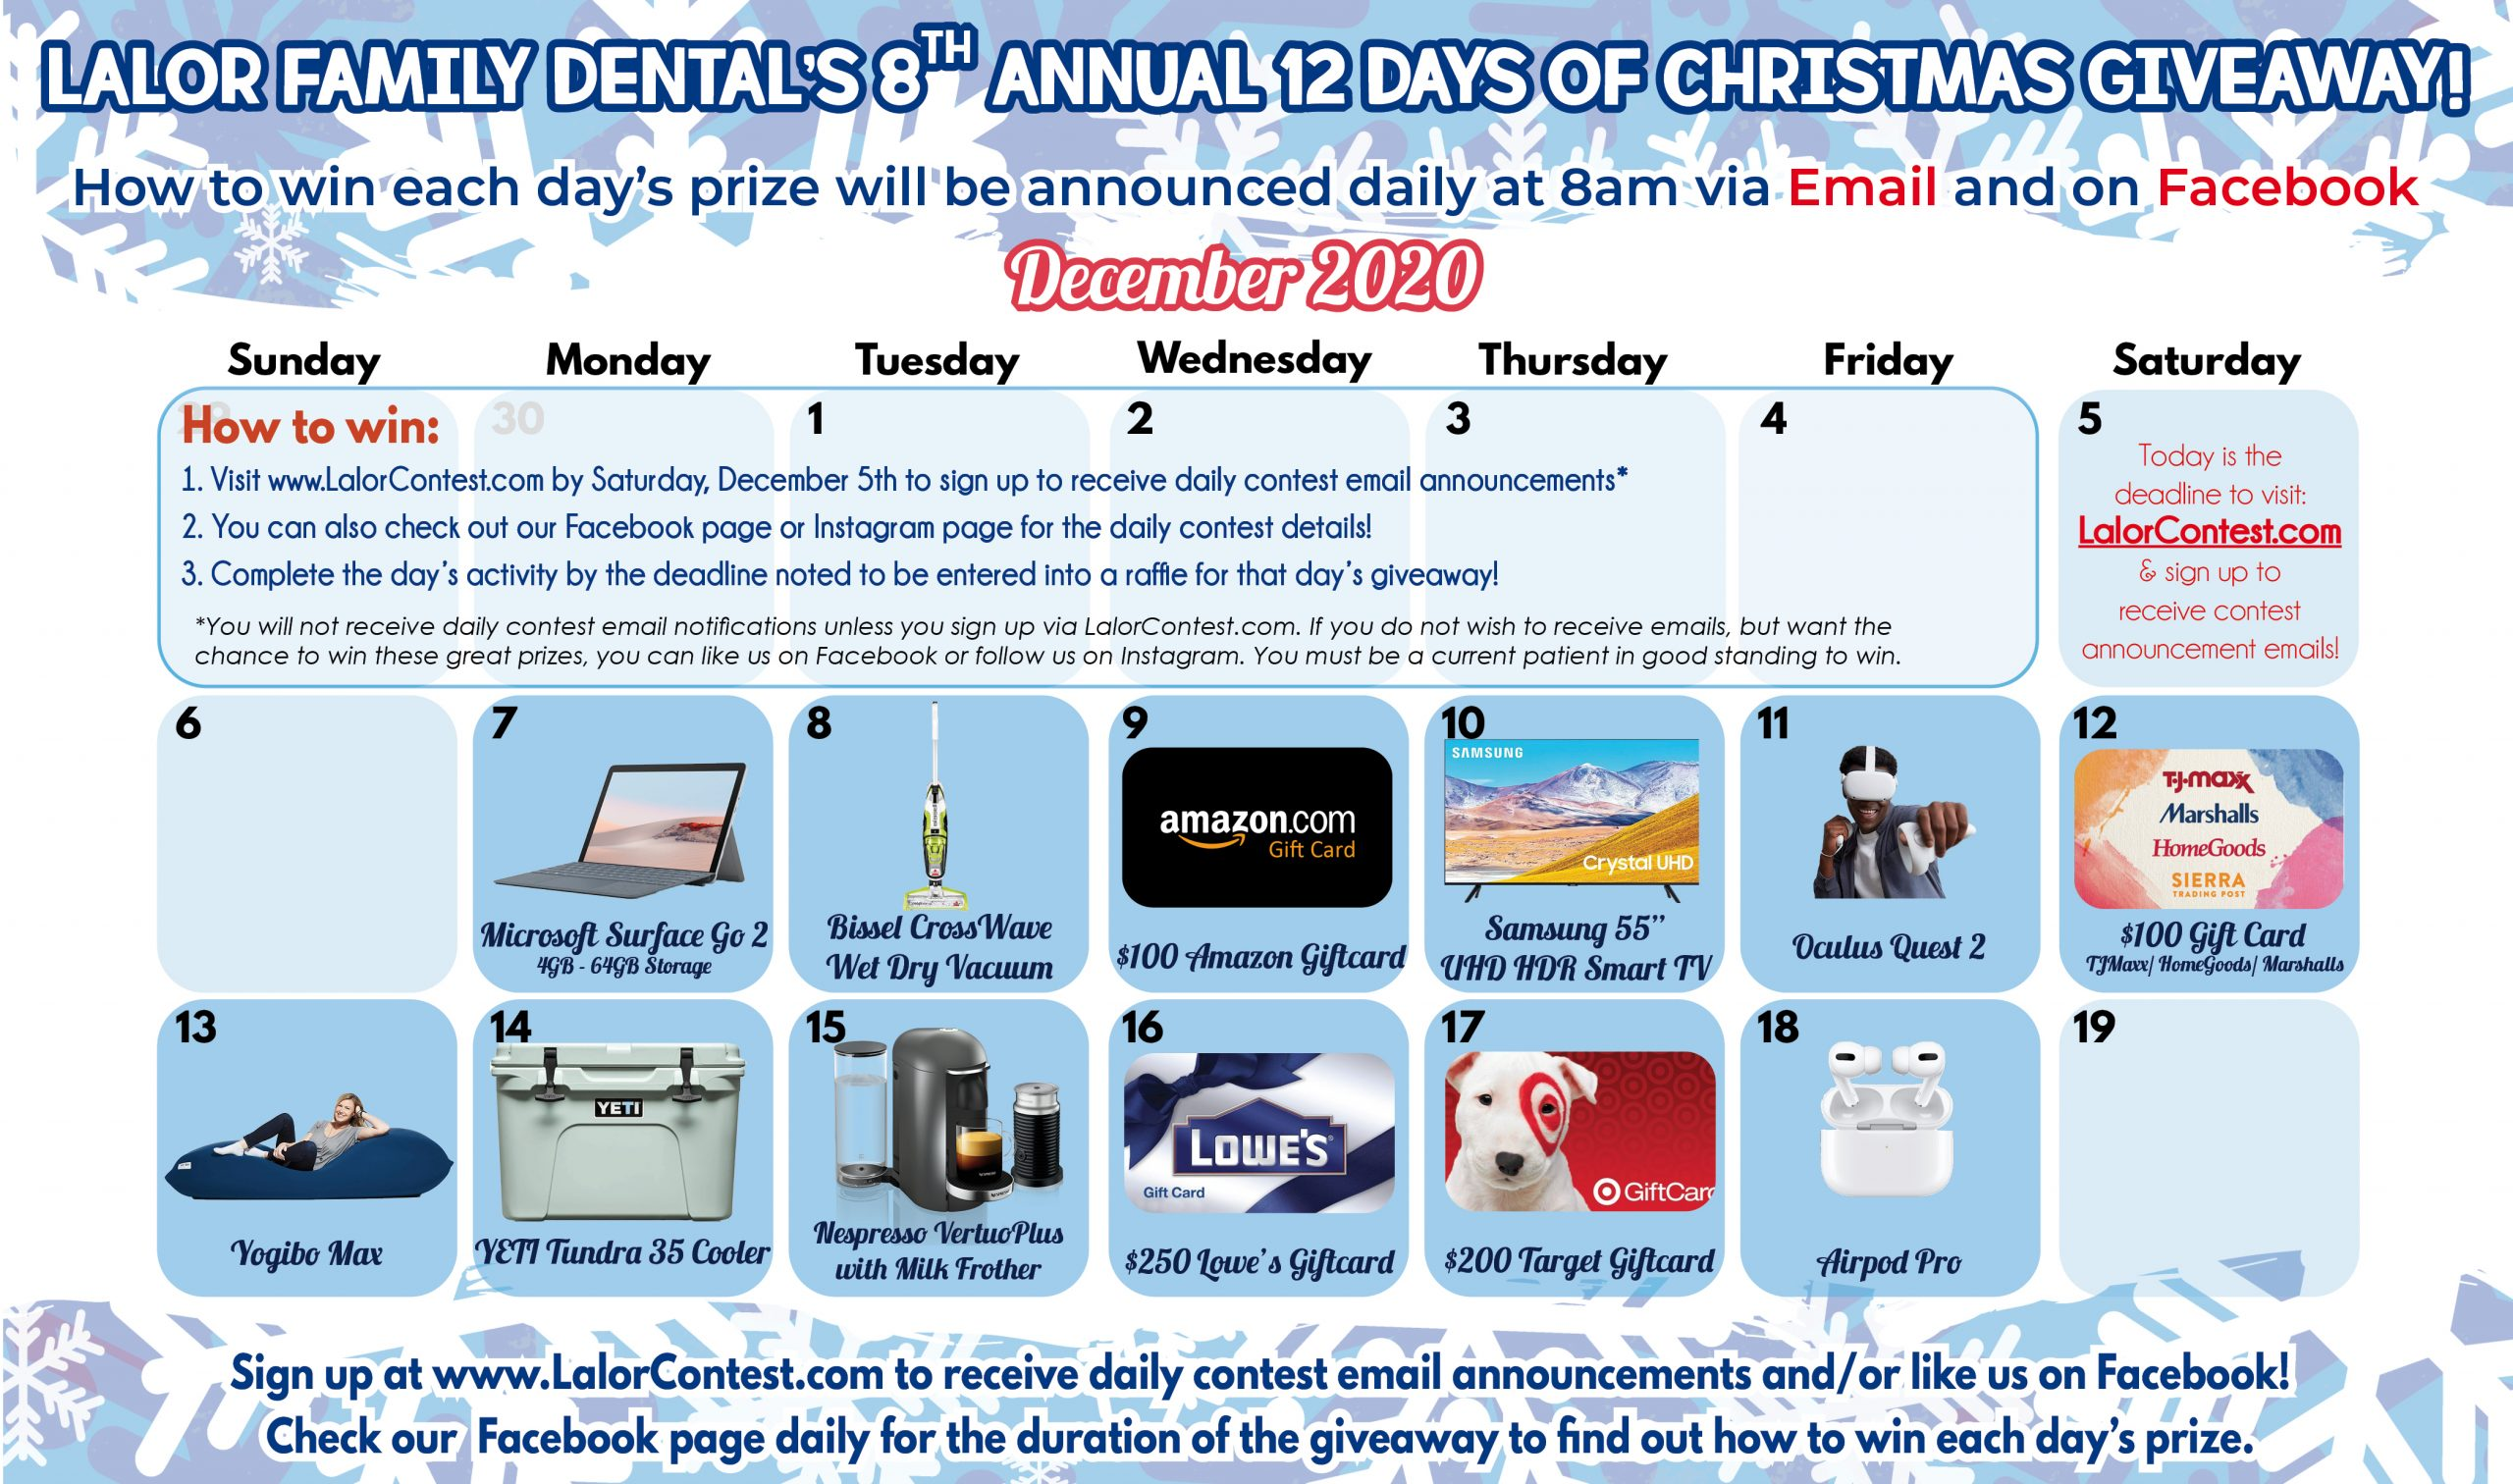 12 Days of Christmas - 2020 - Prizes - LFD General